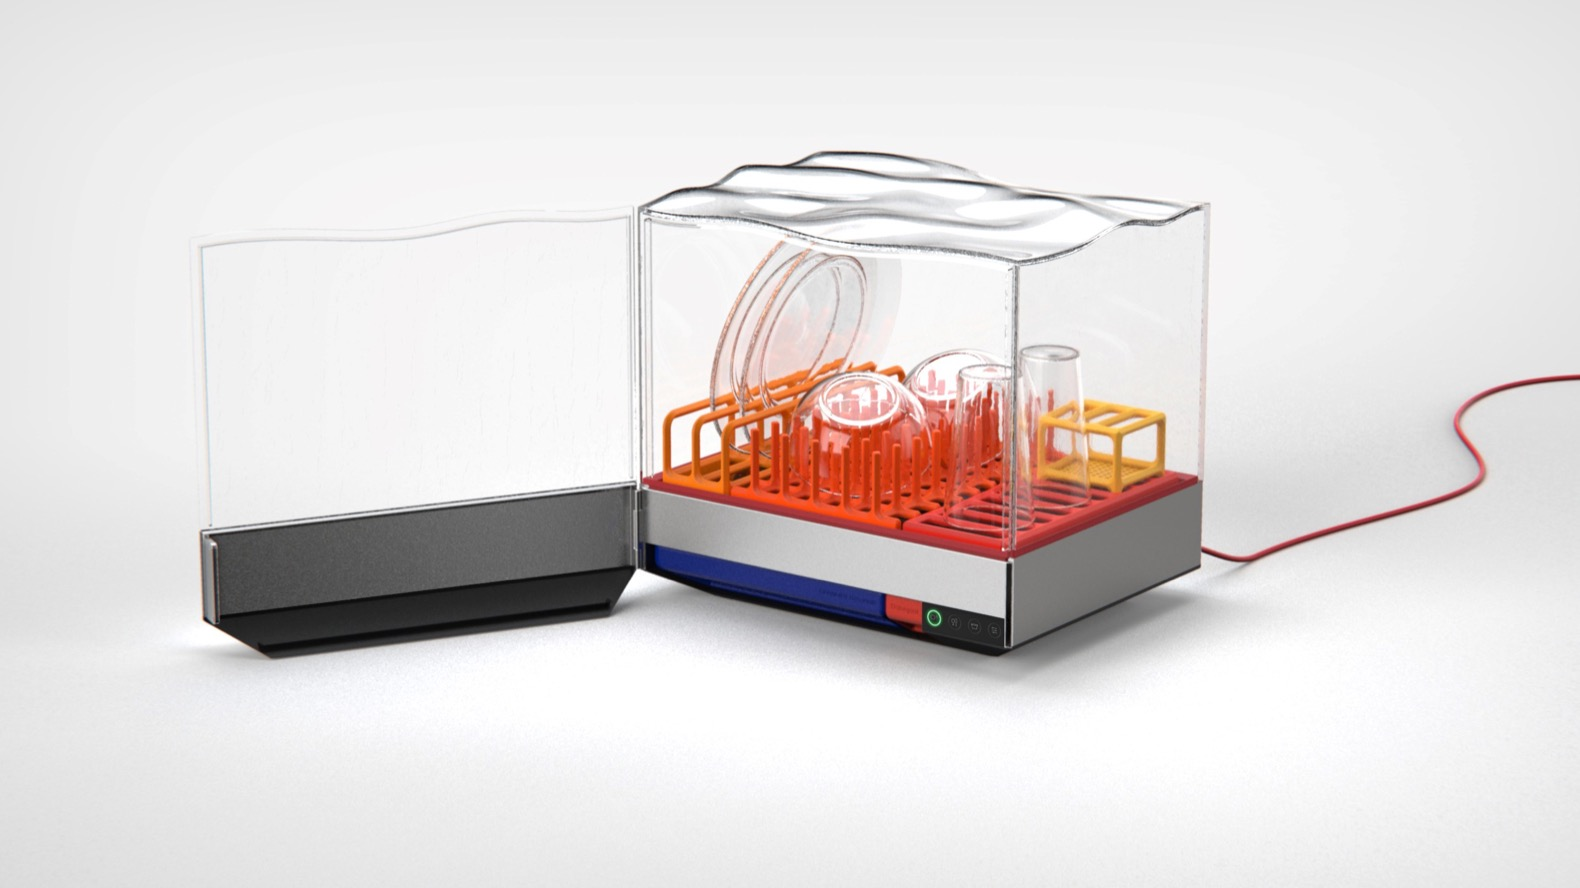 This countertop dishwasher promises to wash your dishes in just 10 minutes